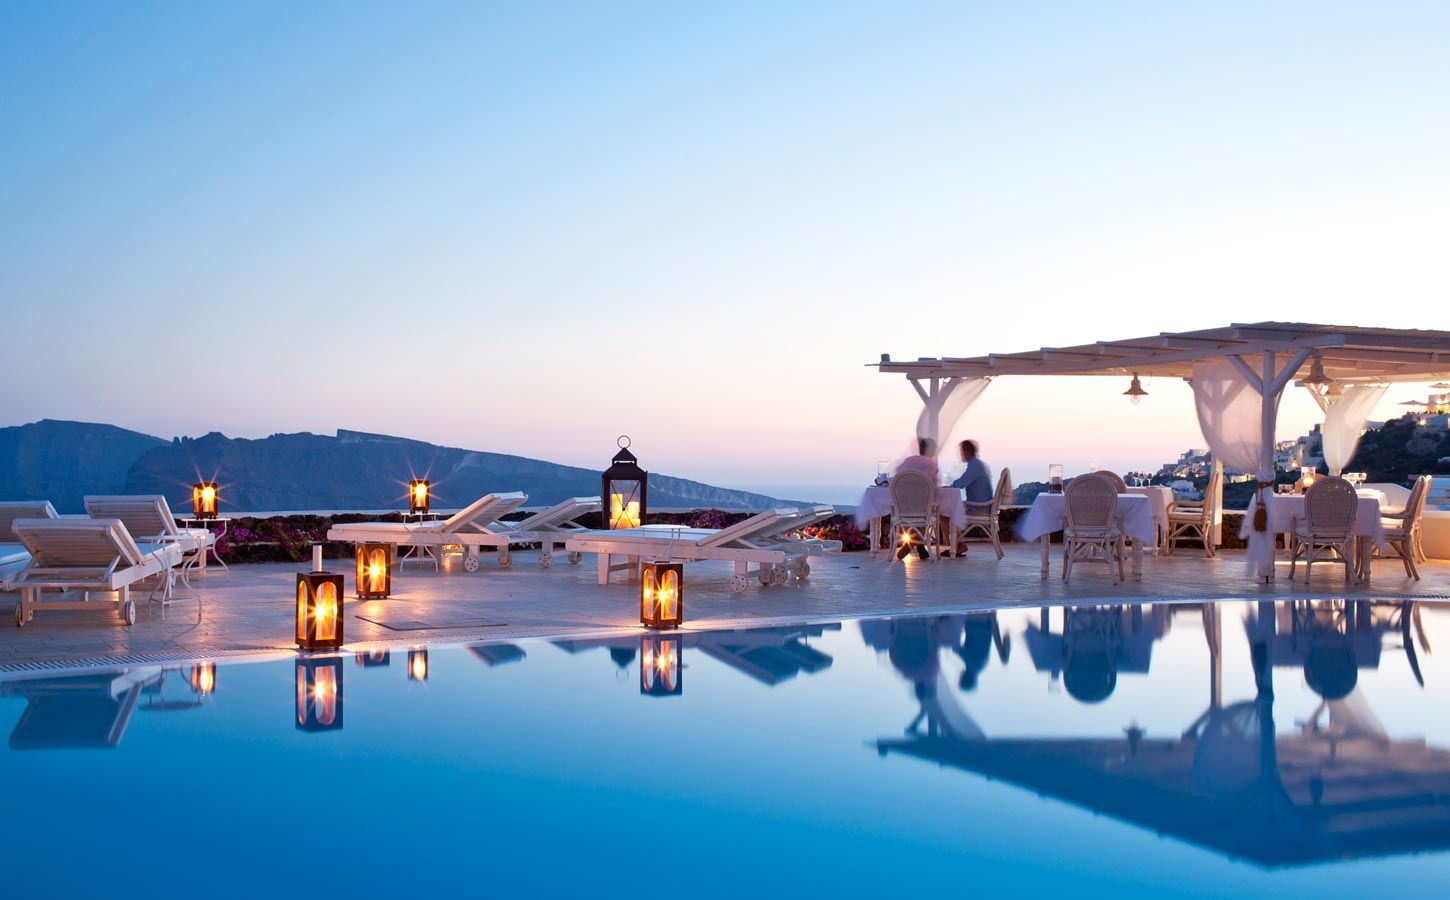 Oia Santorini Reservations Bookings At The Canaves Hotel In Greece